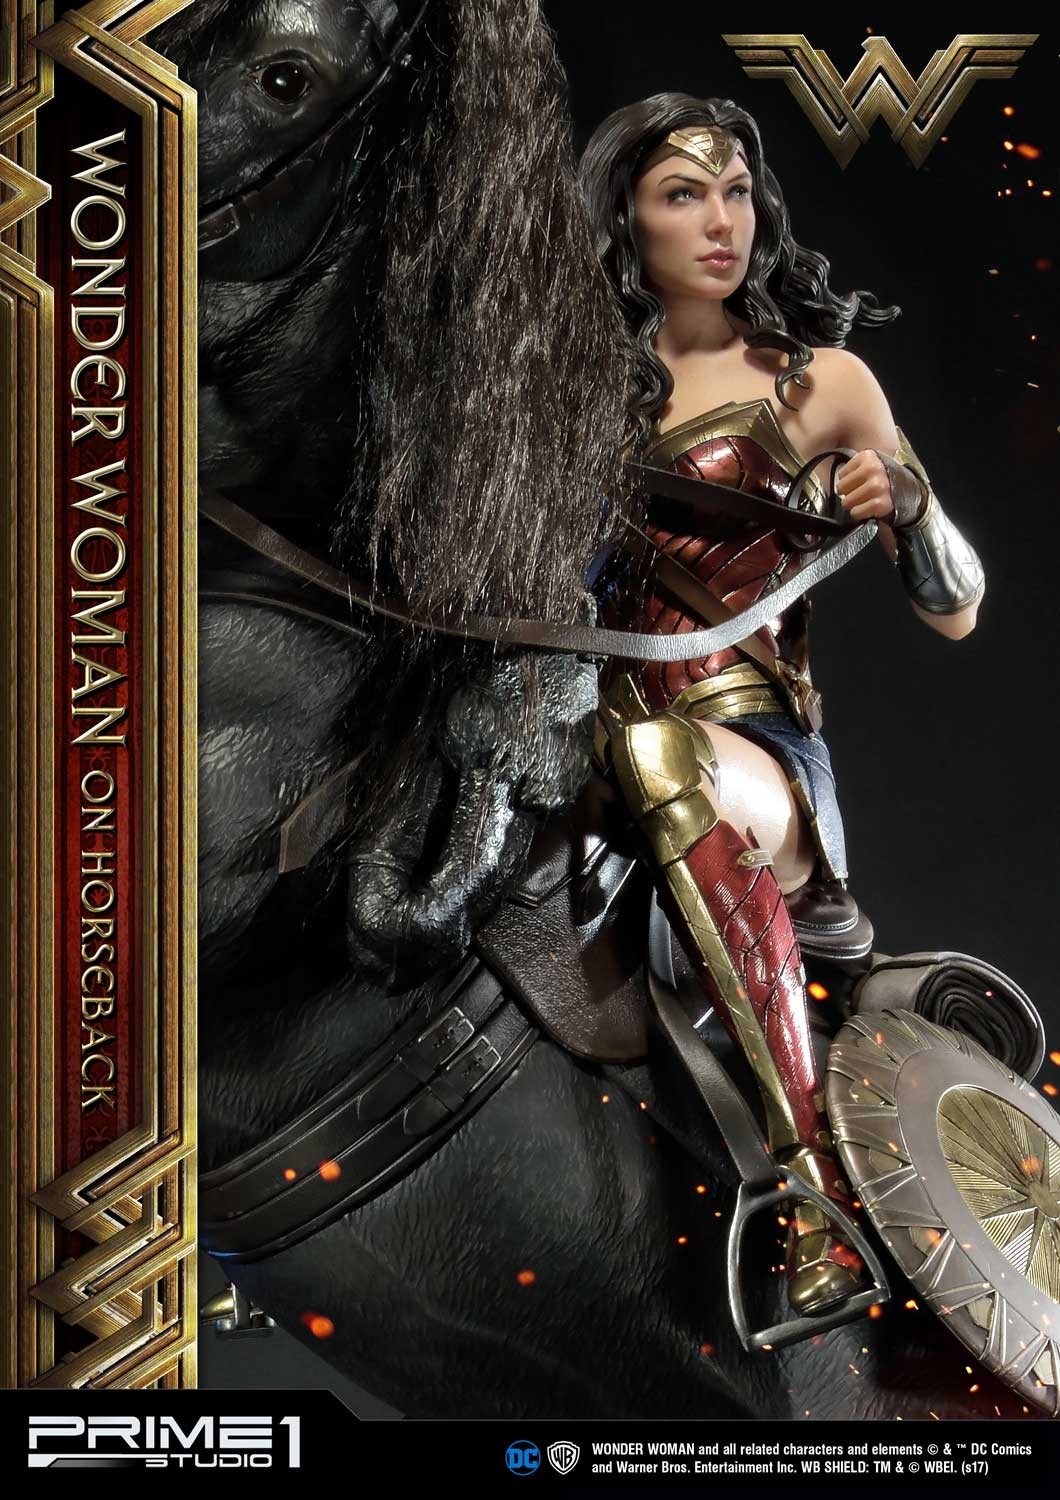 DC Comics - Wonder Woman Movie : Wonder Woman On Horseback 1/3 Scale Museum Masterline statue Mmww-02_b18